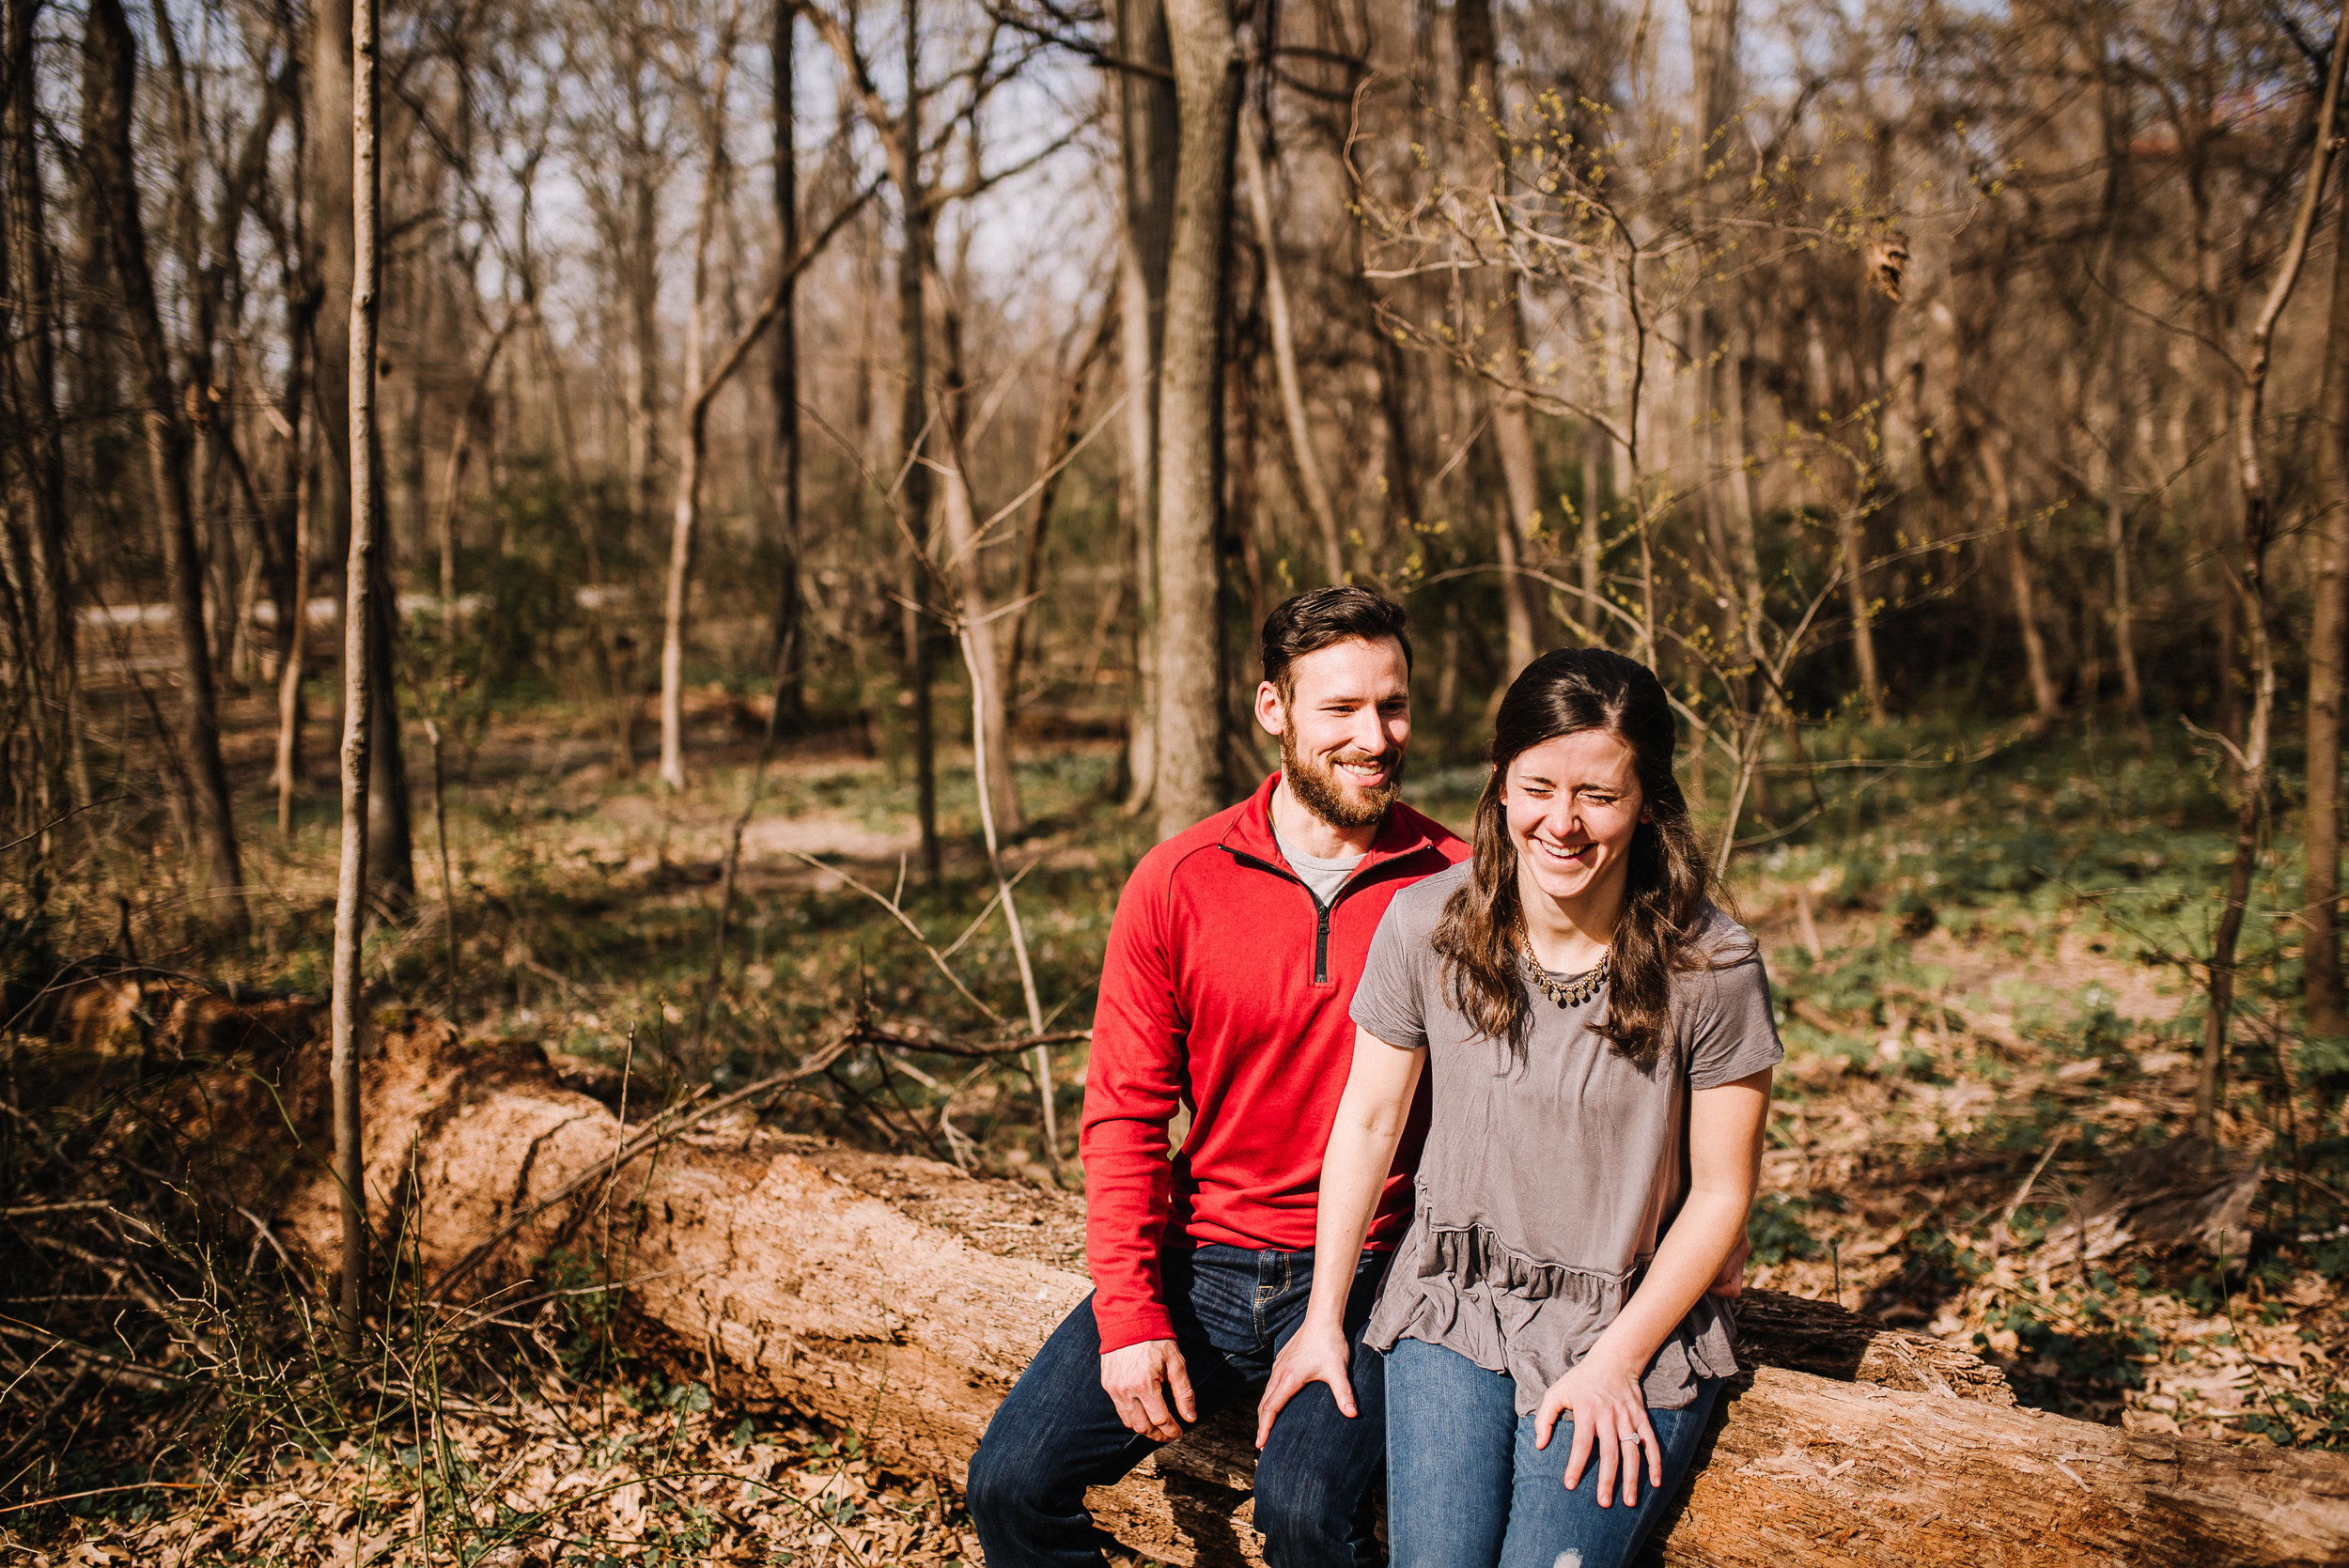 Kadey&Drew_Midtown-Memphis-Engagement_Ashley-Benham-Photography-36.jpg